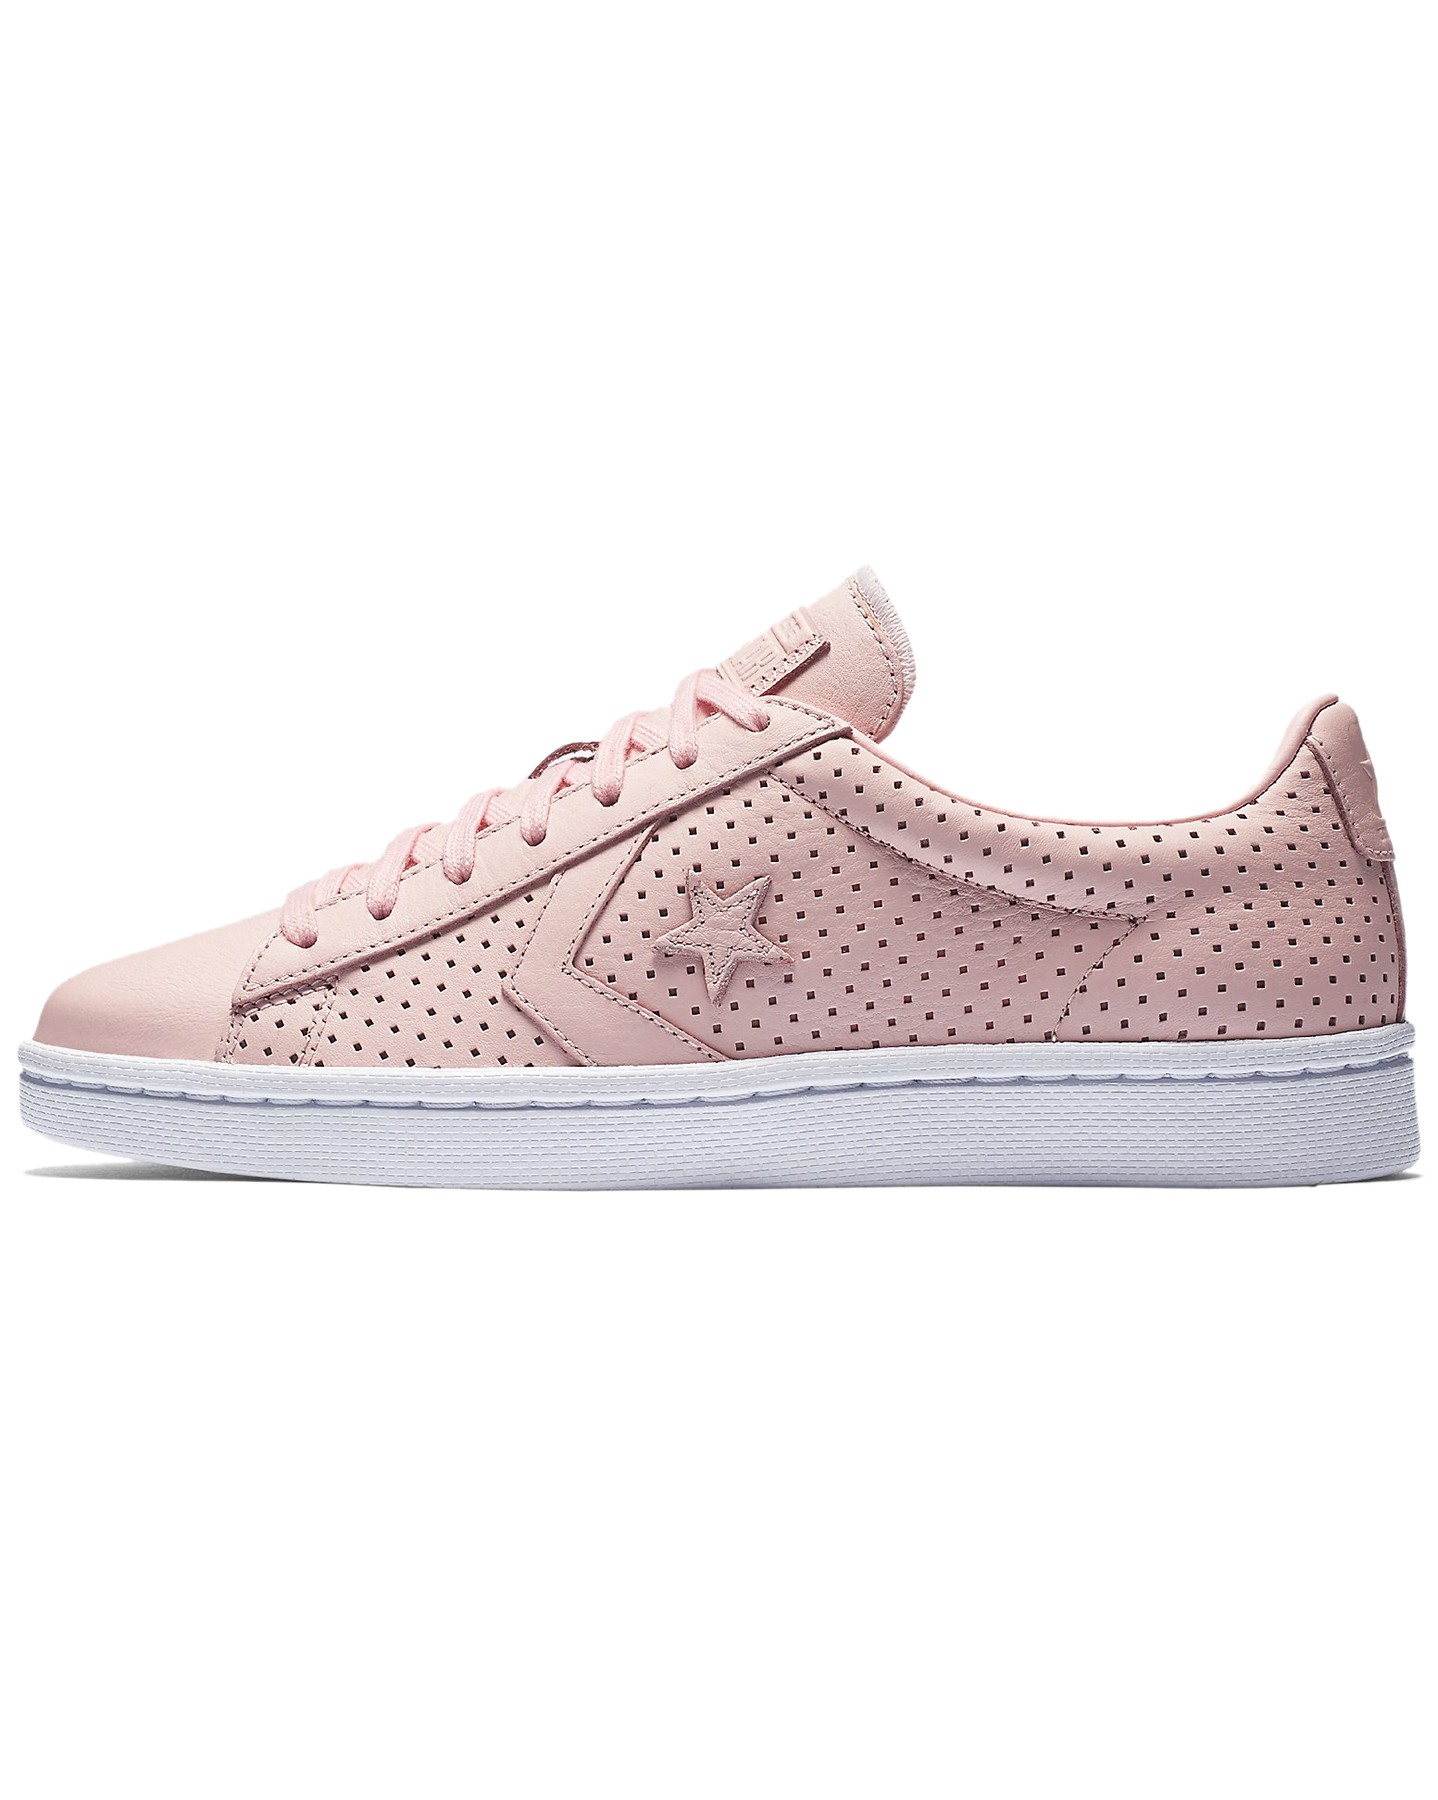 Converse Pro Leather Botanical Gardens Low Top